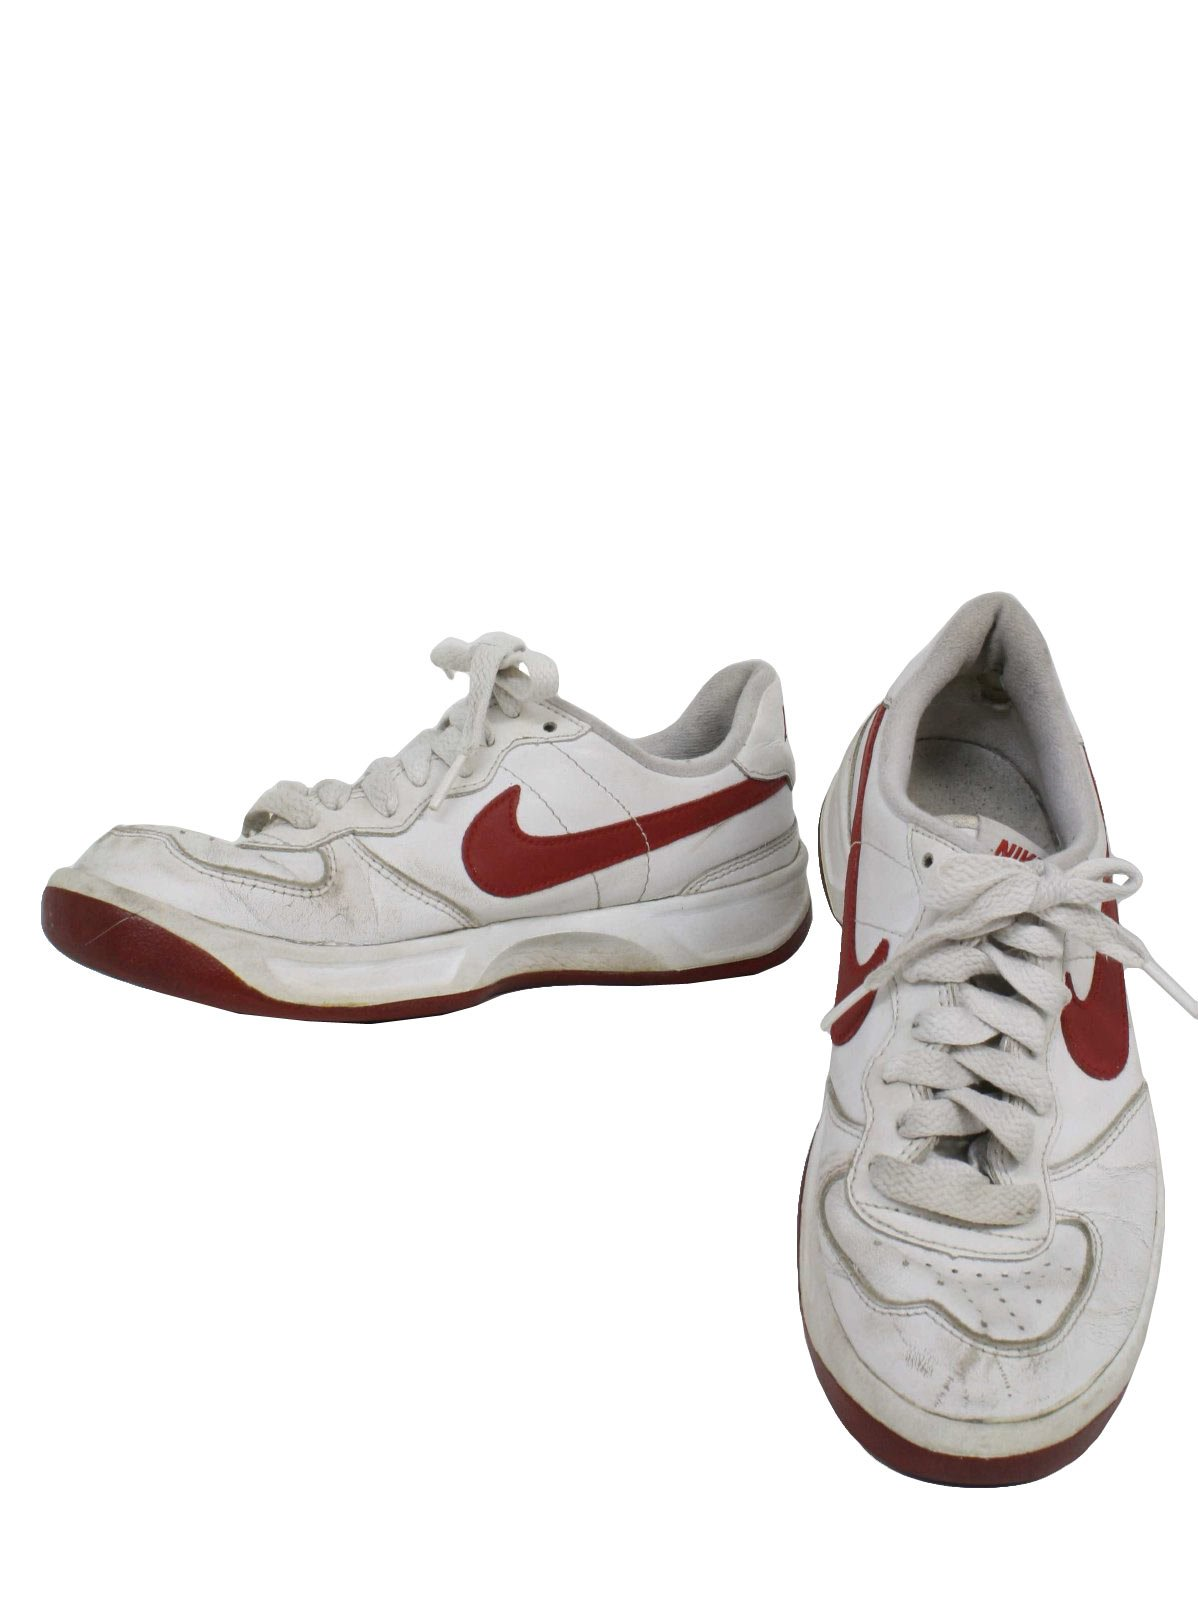 1990s Vintage Shoes: 90s -Nike- Mens white with red swoosh flat bottom old school style tennis shoes. Shoes show light wear but still have a long life to live. Would look awesome with a pair of baggy pants or short shorts.